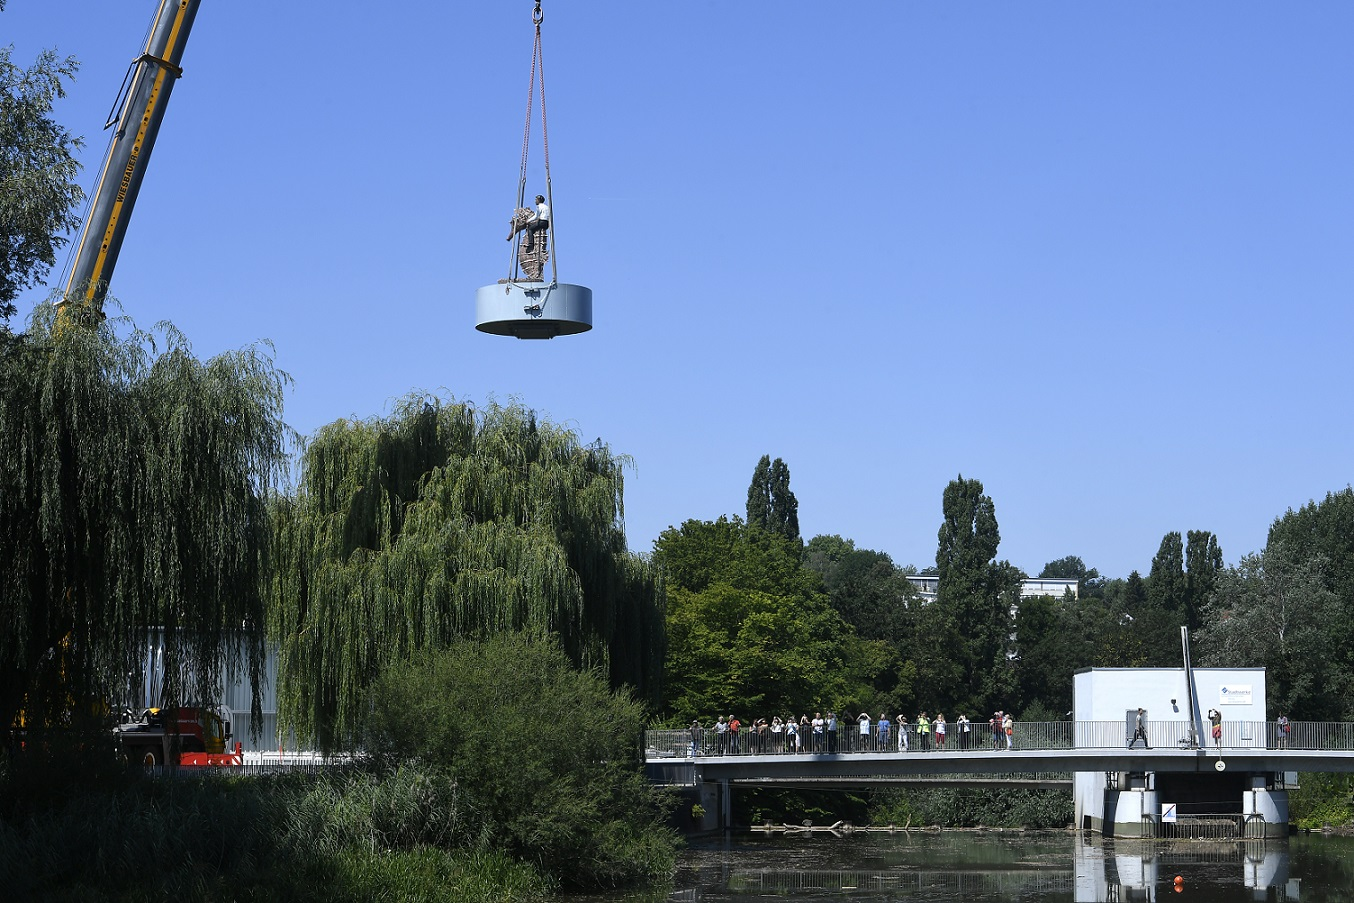 Stephan Balkenhol's piece of art - more than four metres in hight - is being lifted to it's place on the river Rems in Waiblingen.